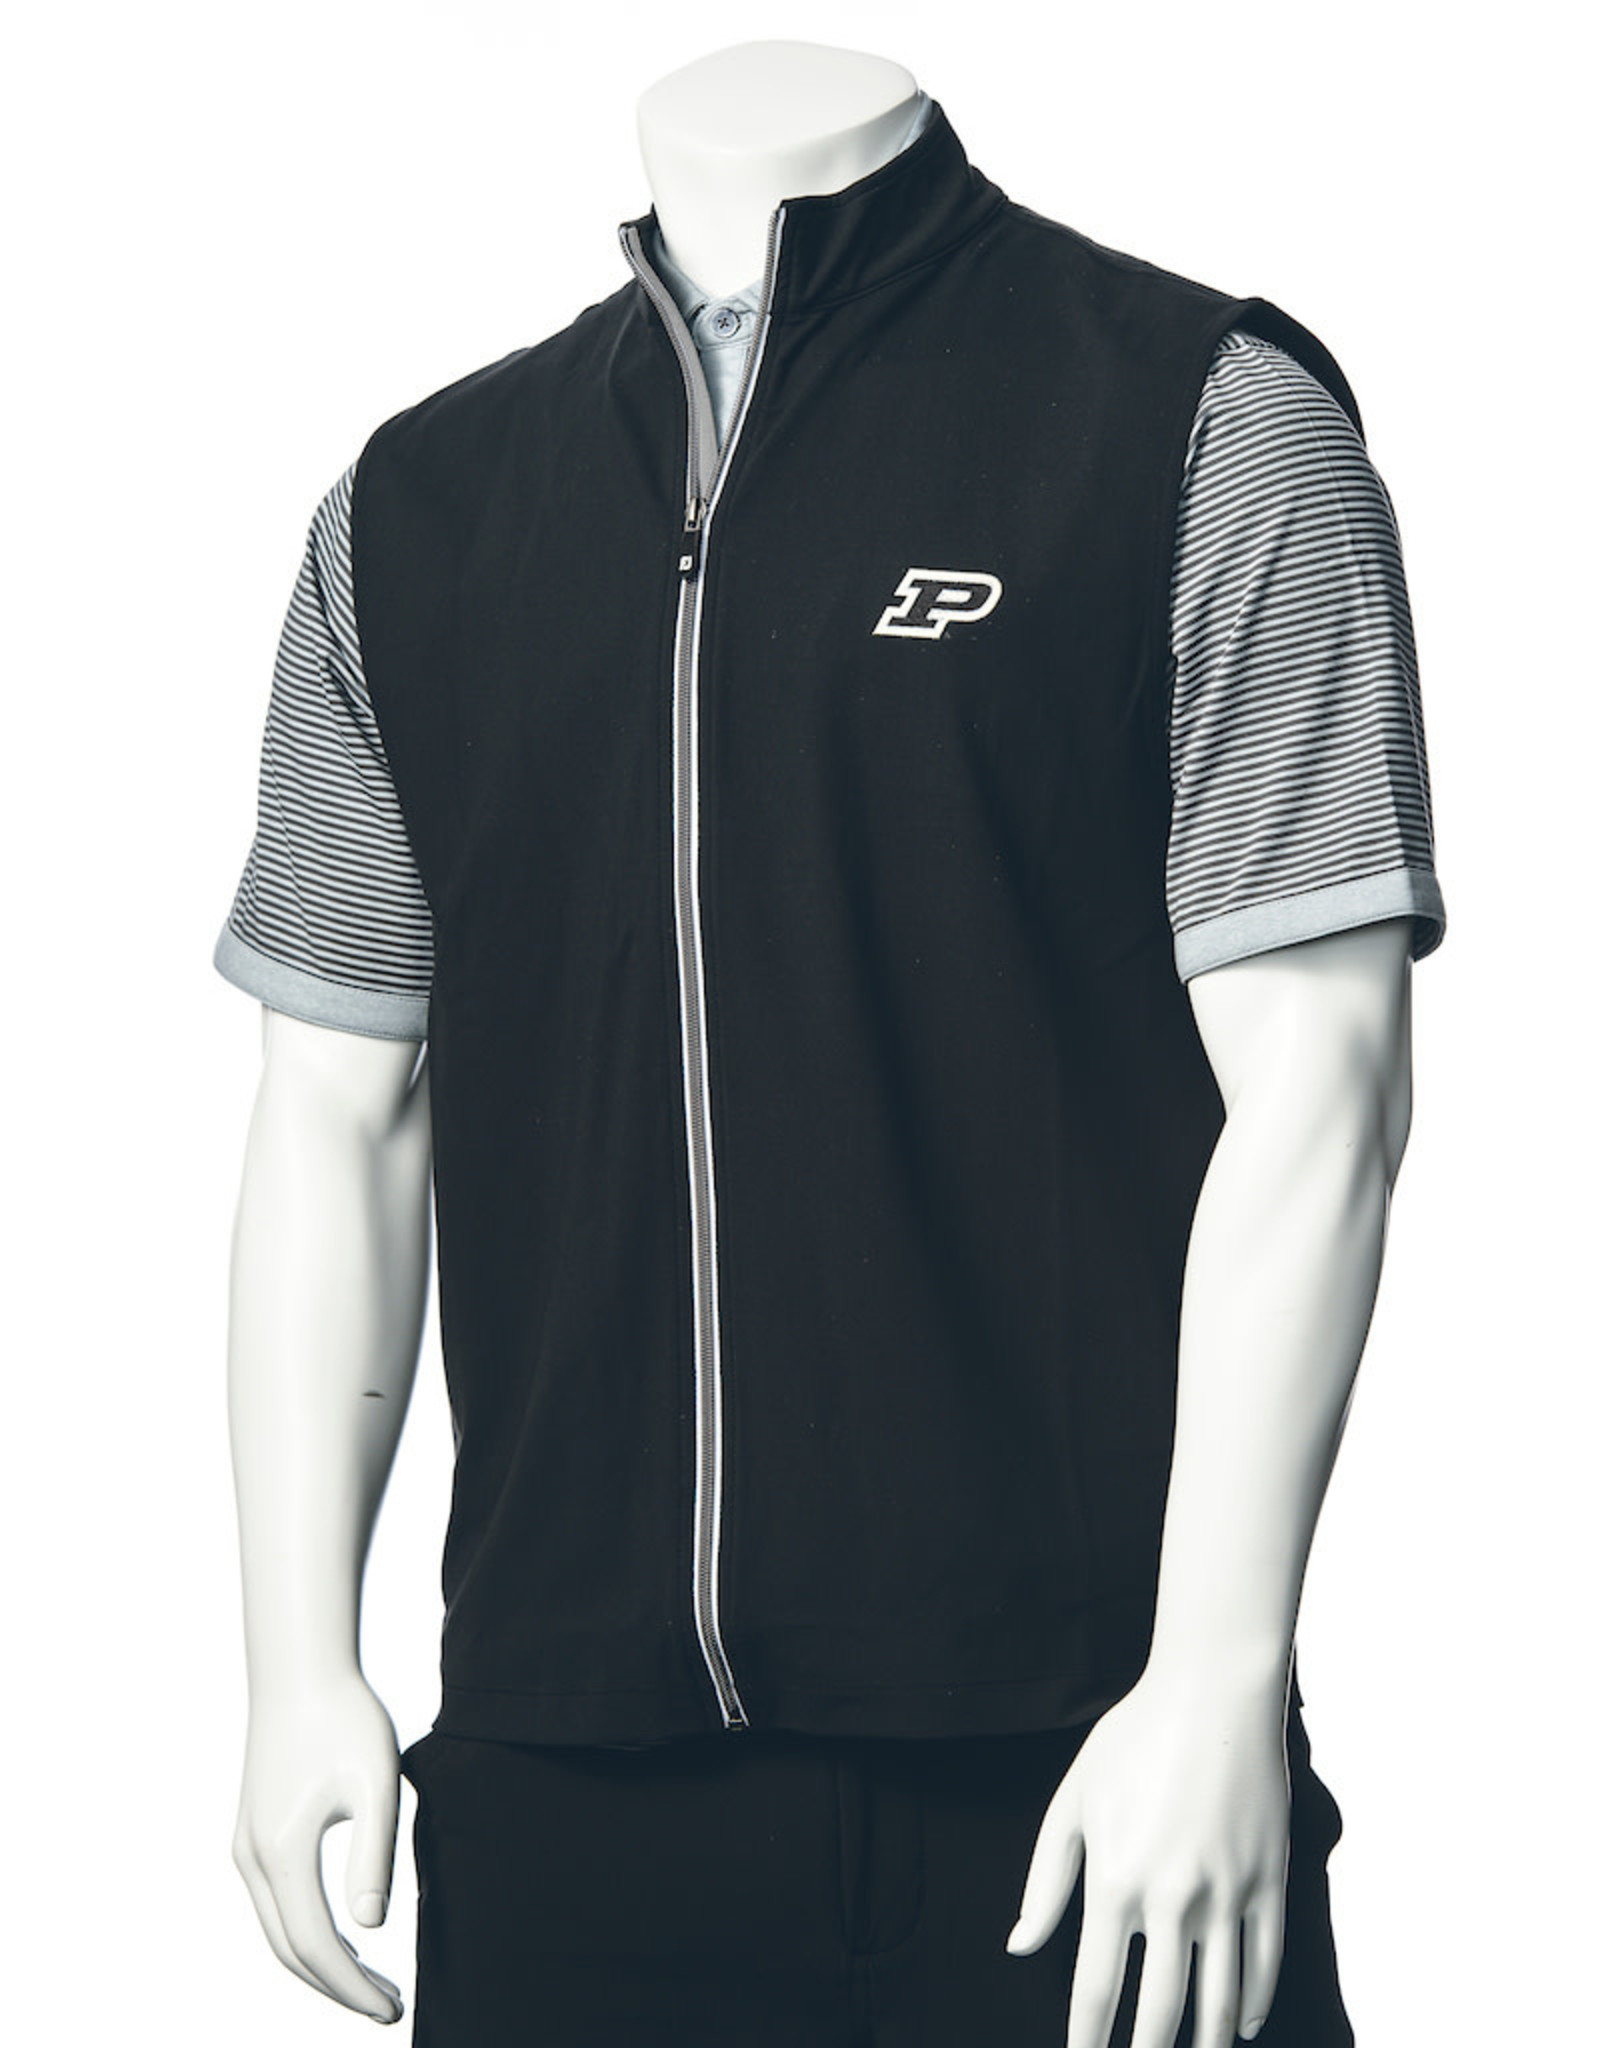 FOOT JOY FOOTJOY FULL ZIP VEST